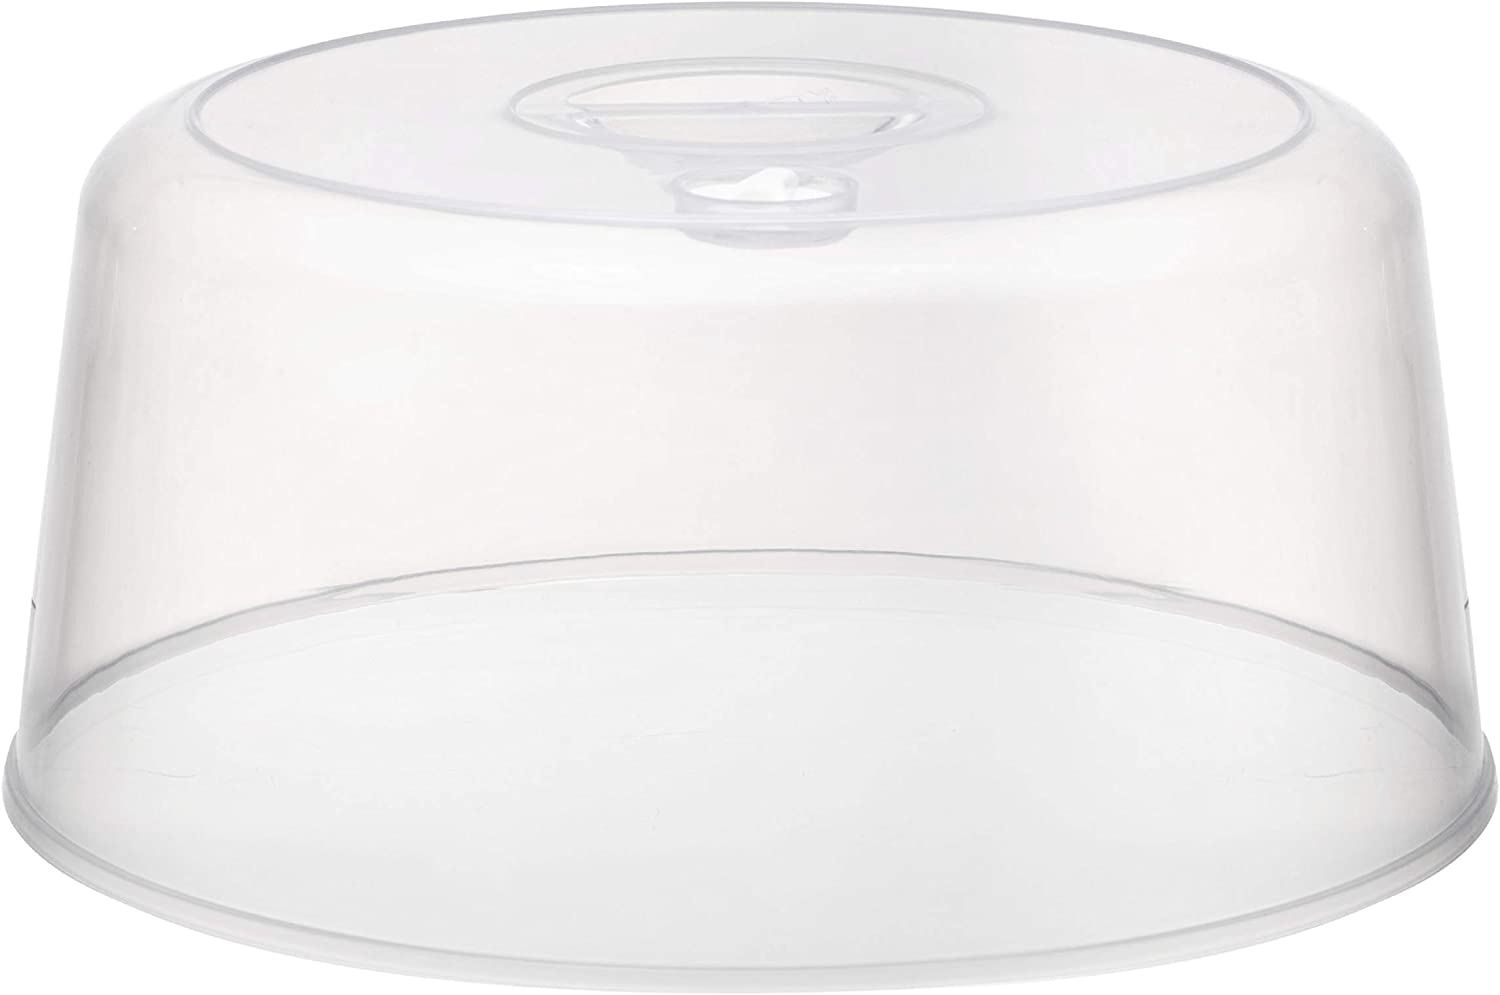 Clear Microwave Plate Cover Food Dish Lid Ventilated Steam Vent Kitchen ODHN xl